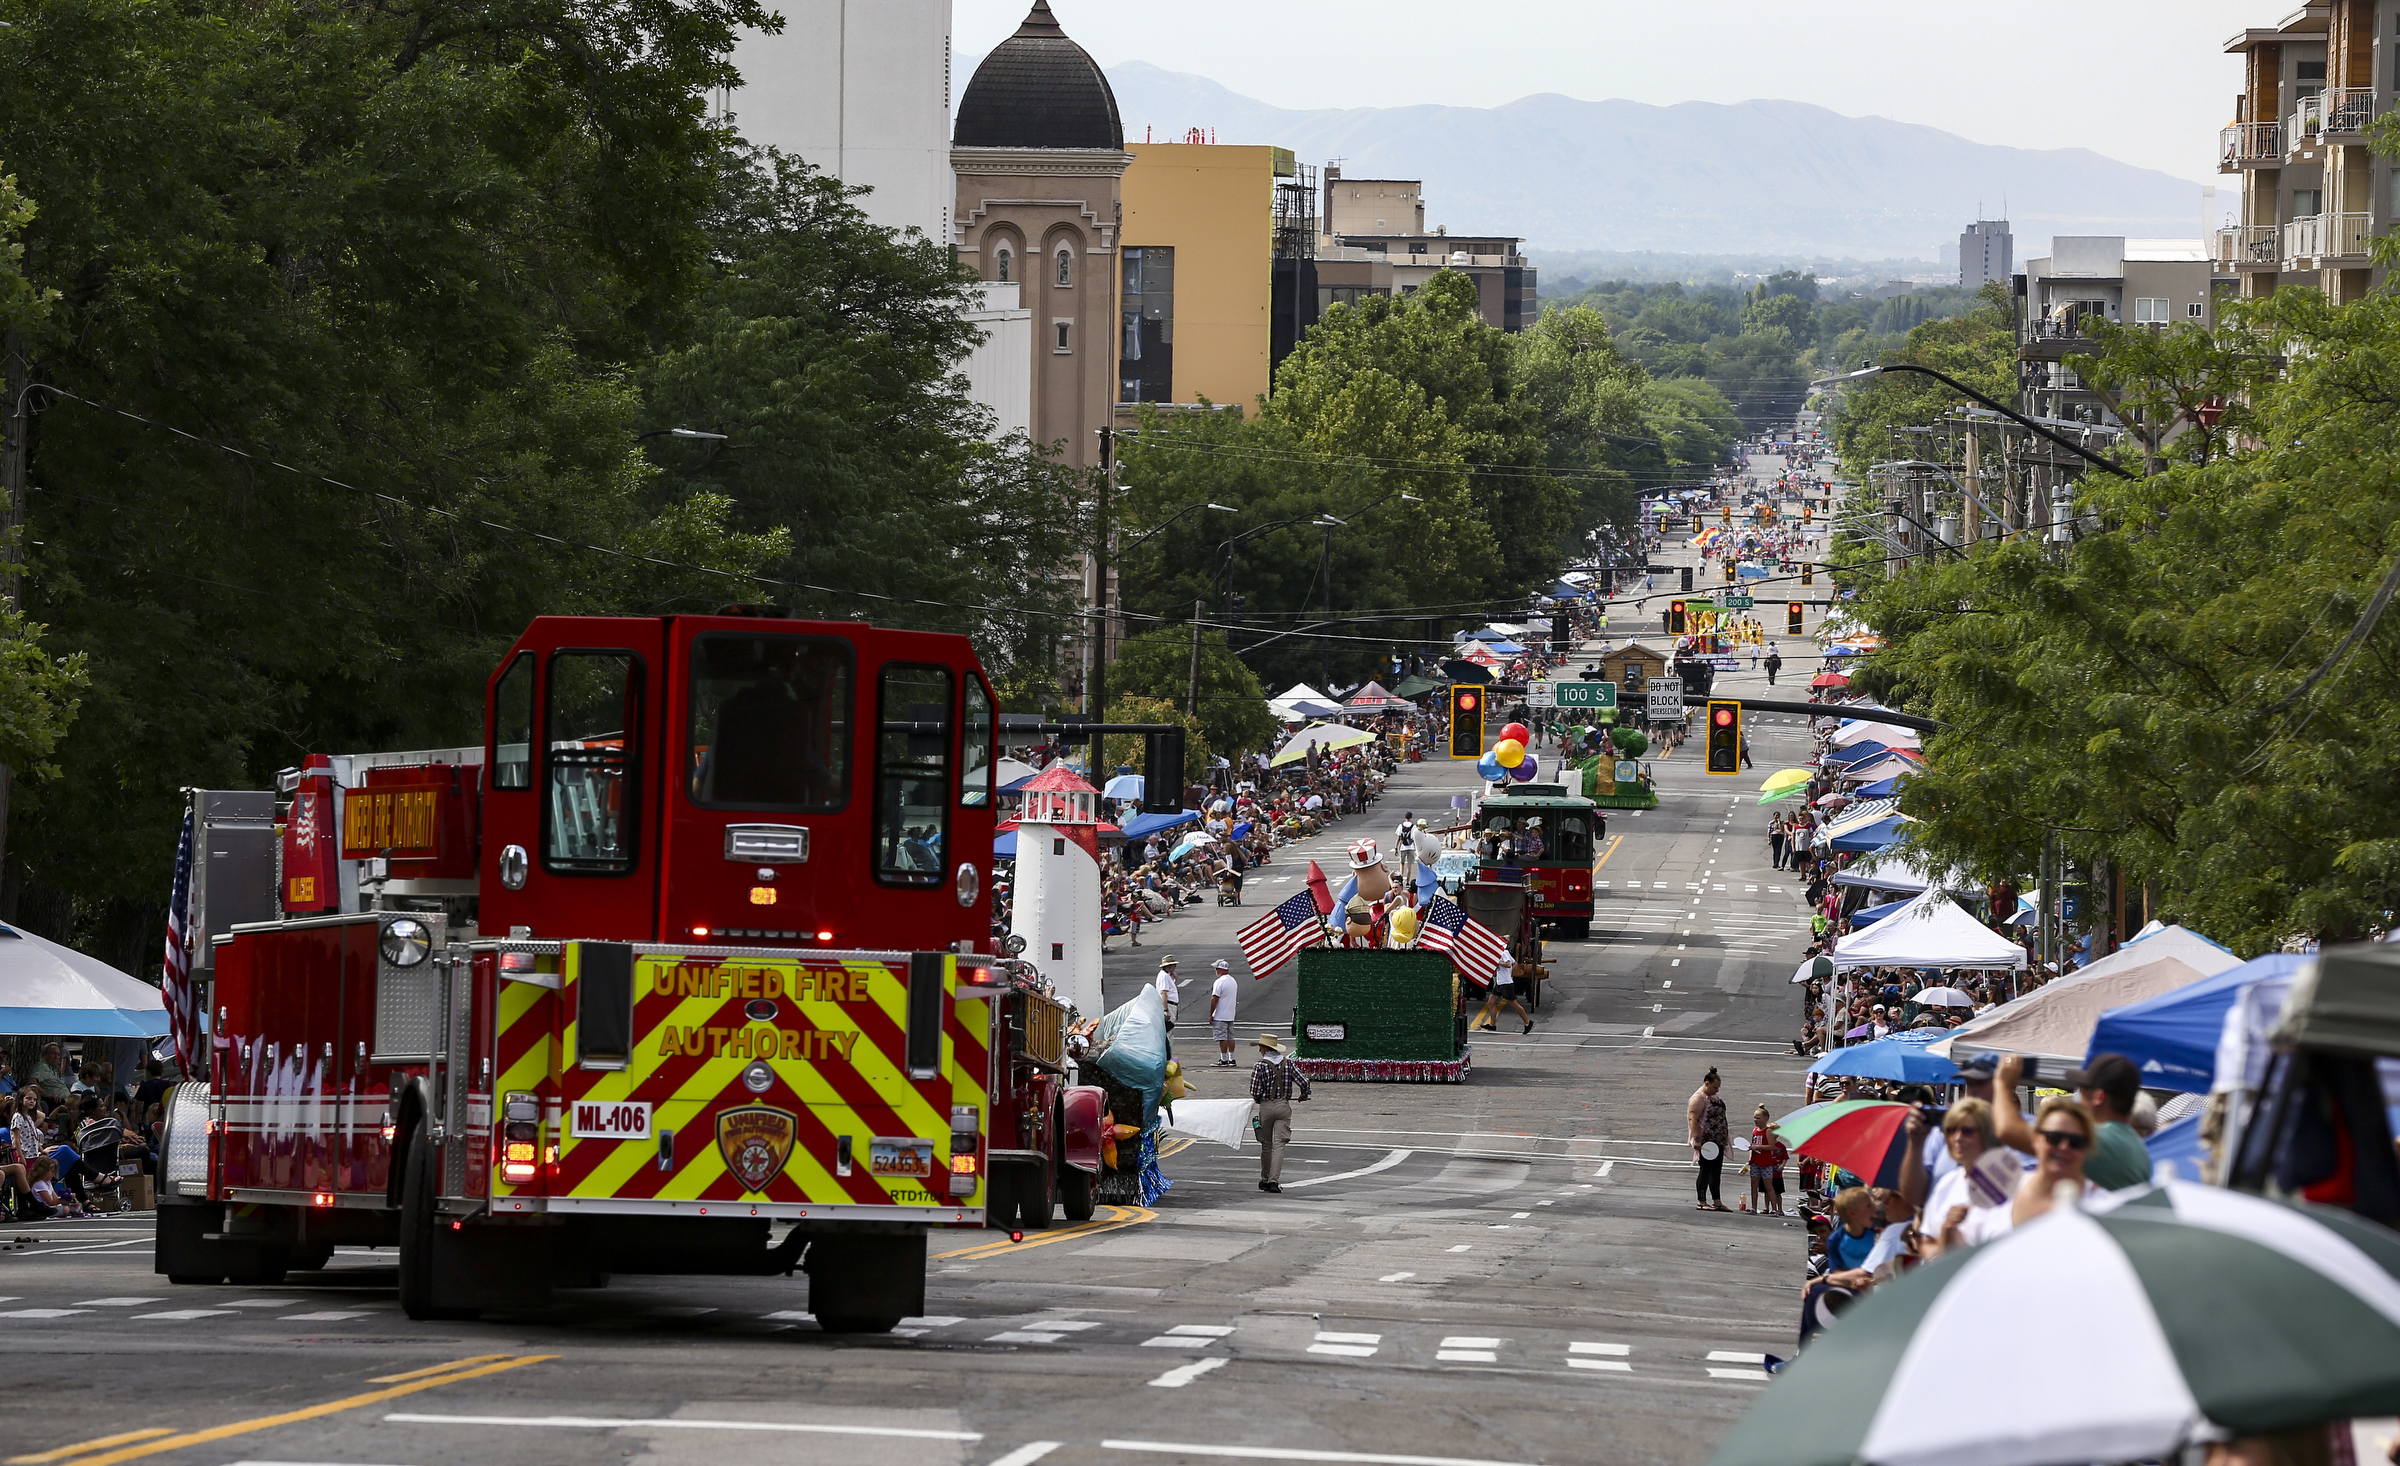 The Days of 47 Parade stretches down South 200 East Street in Downtown Salt Lake City on Wednesday, July 24, 2019.